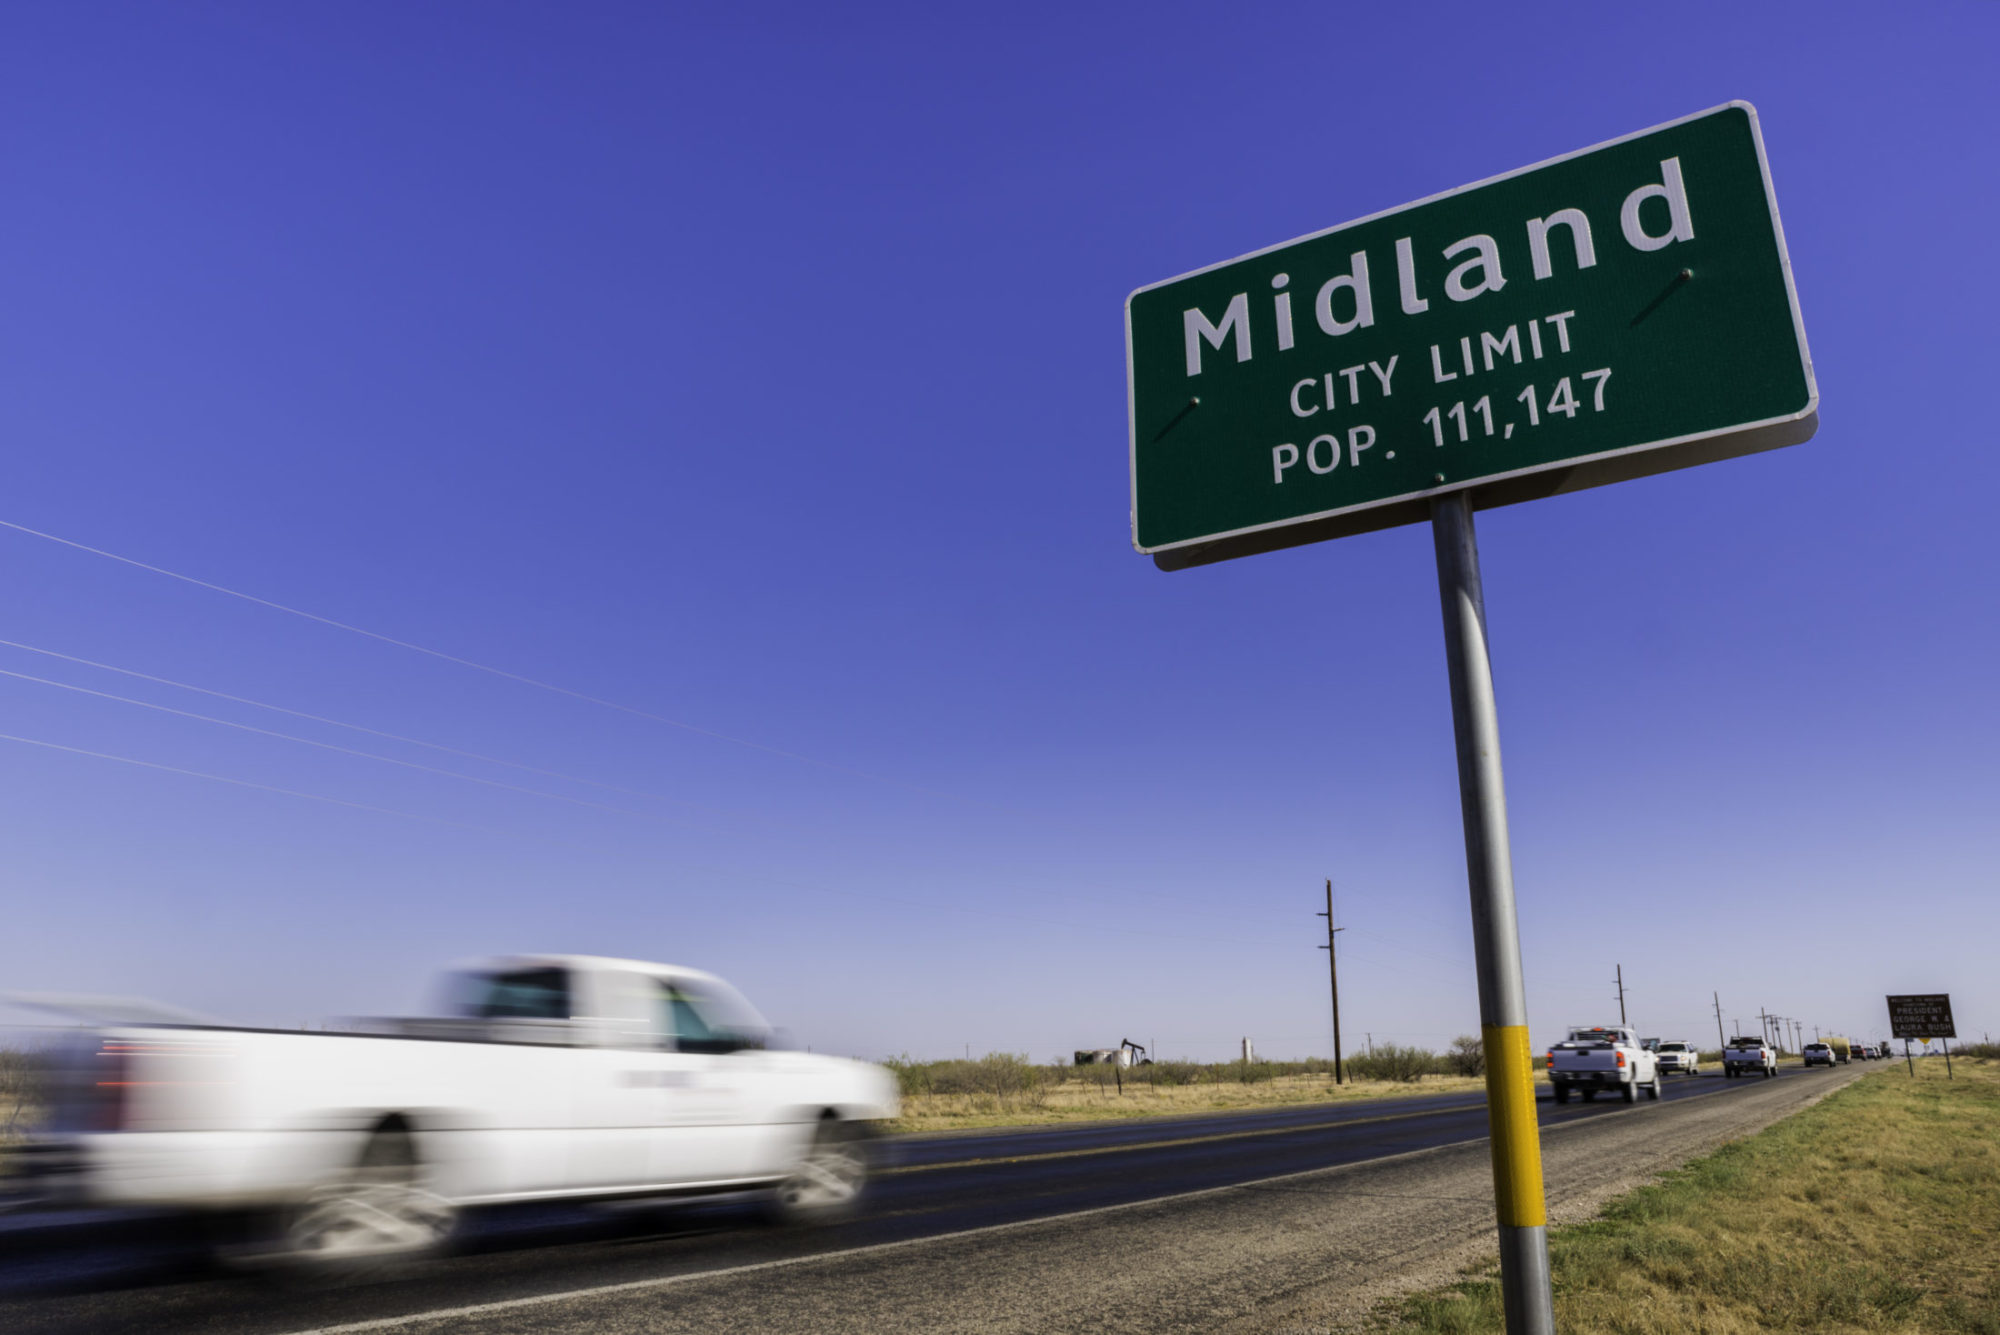 Midland, Texas city limit sign